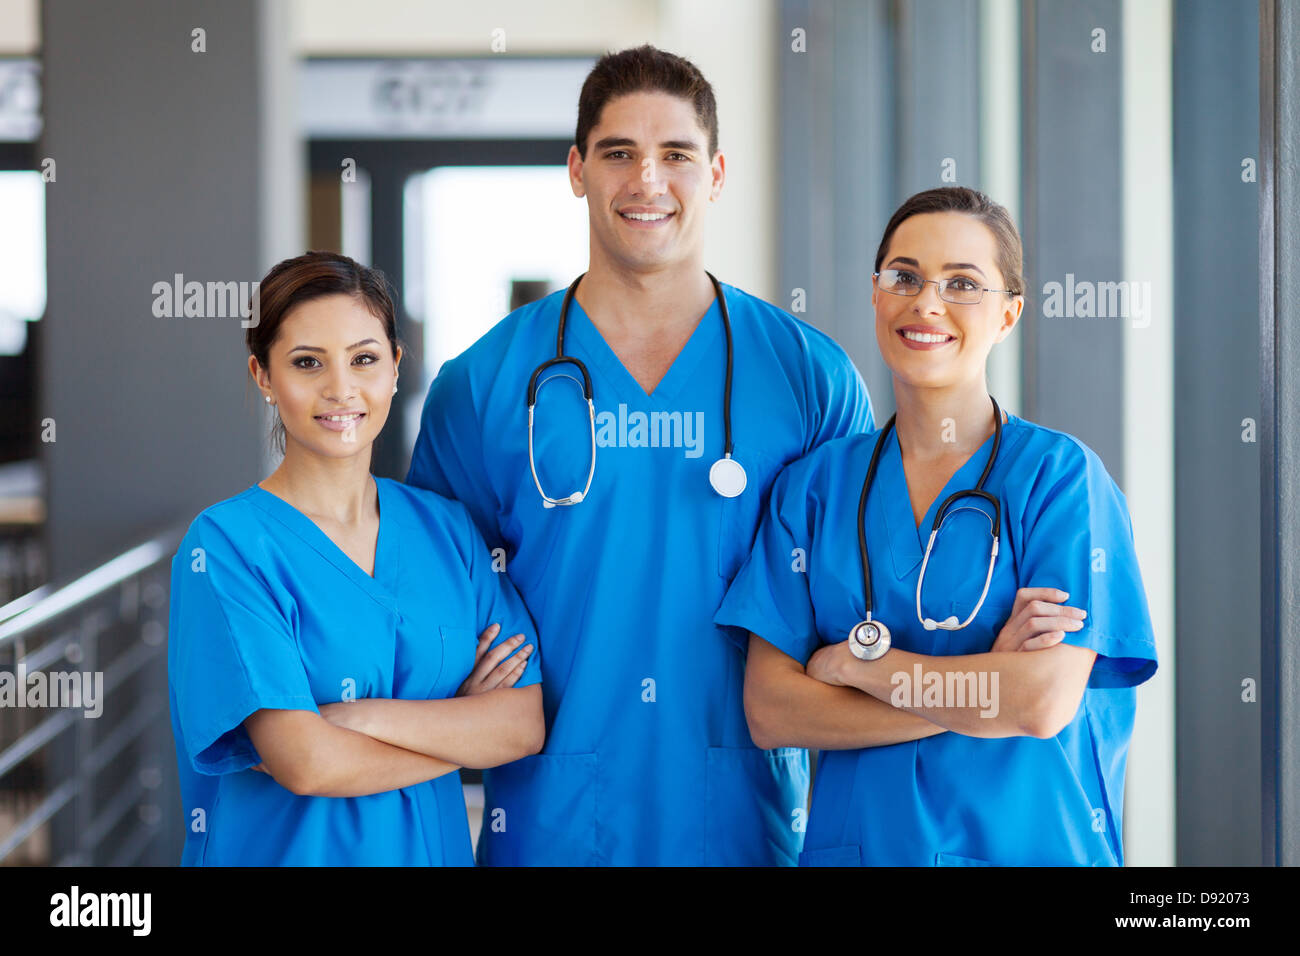 group of young hospital workers in scrubs - Stock Image